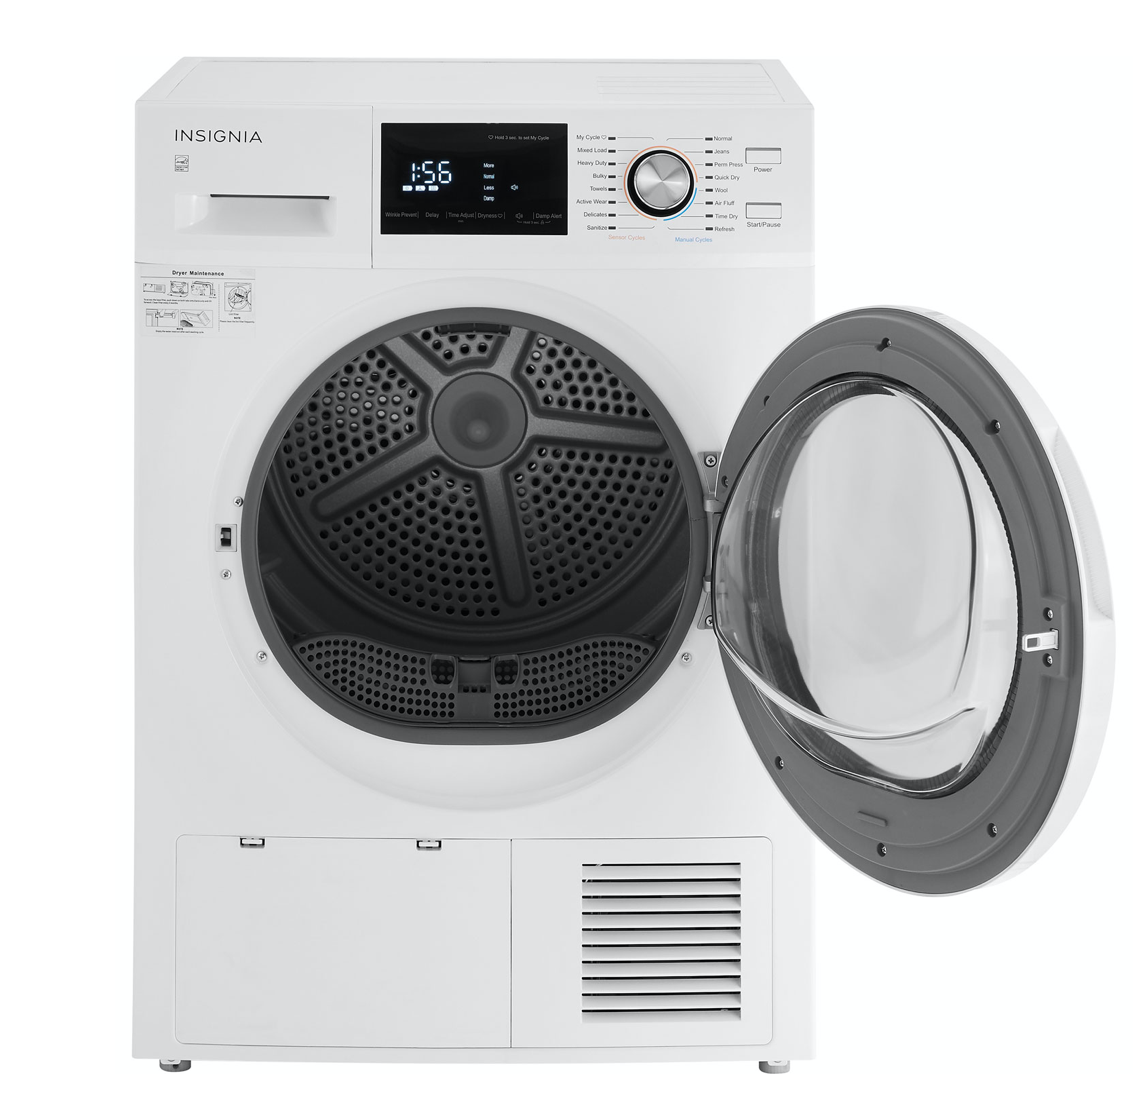 front of the Insignia electric dryer